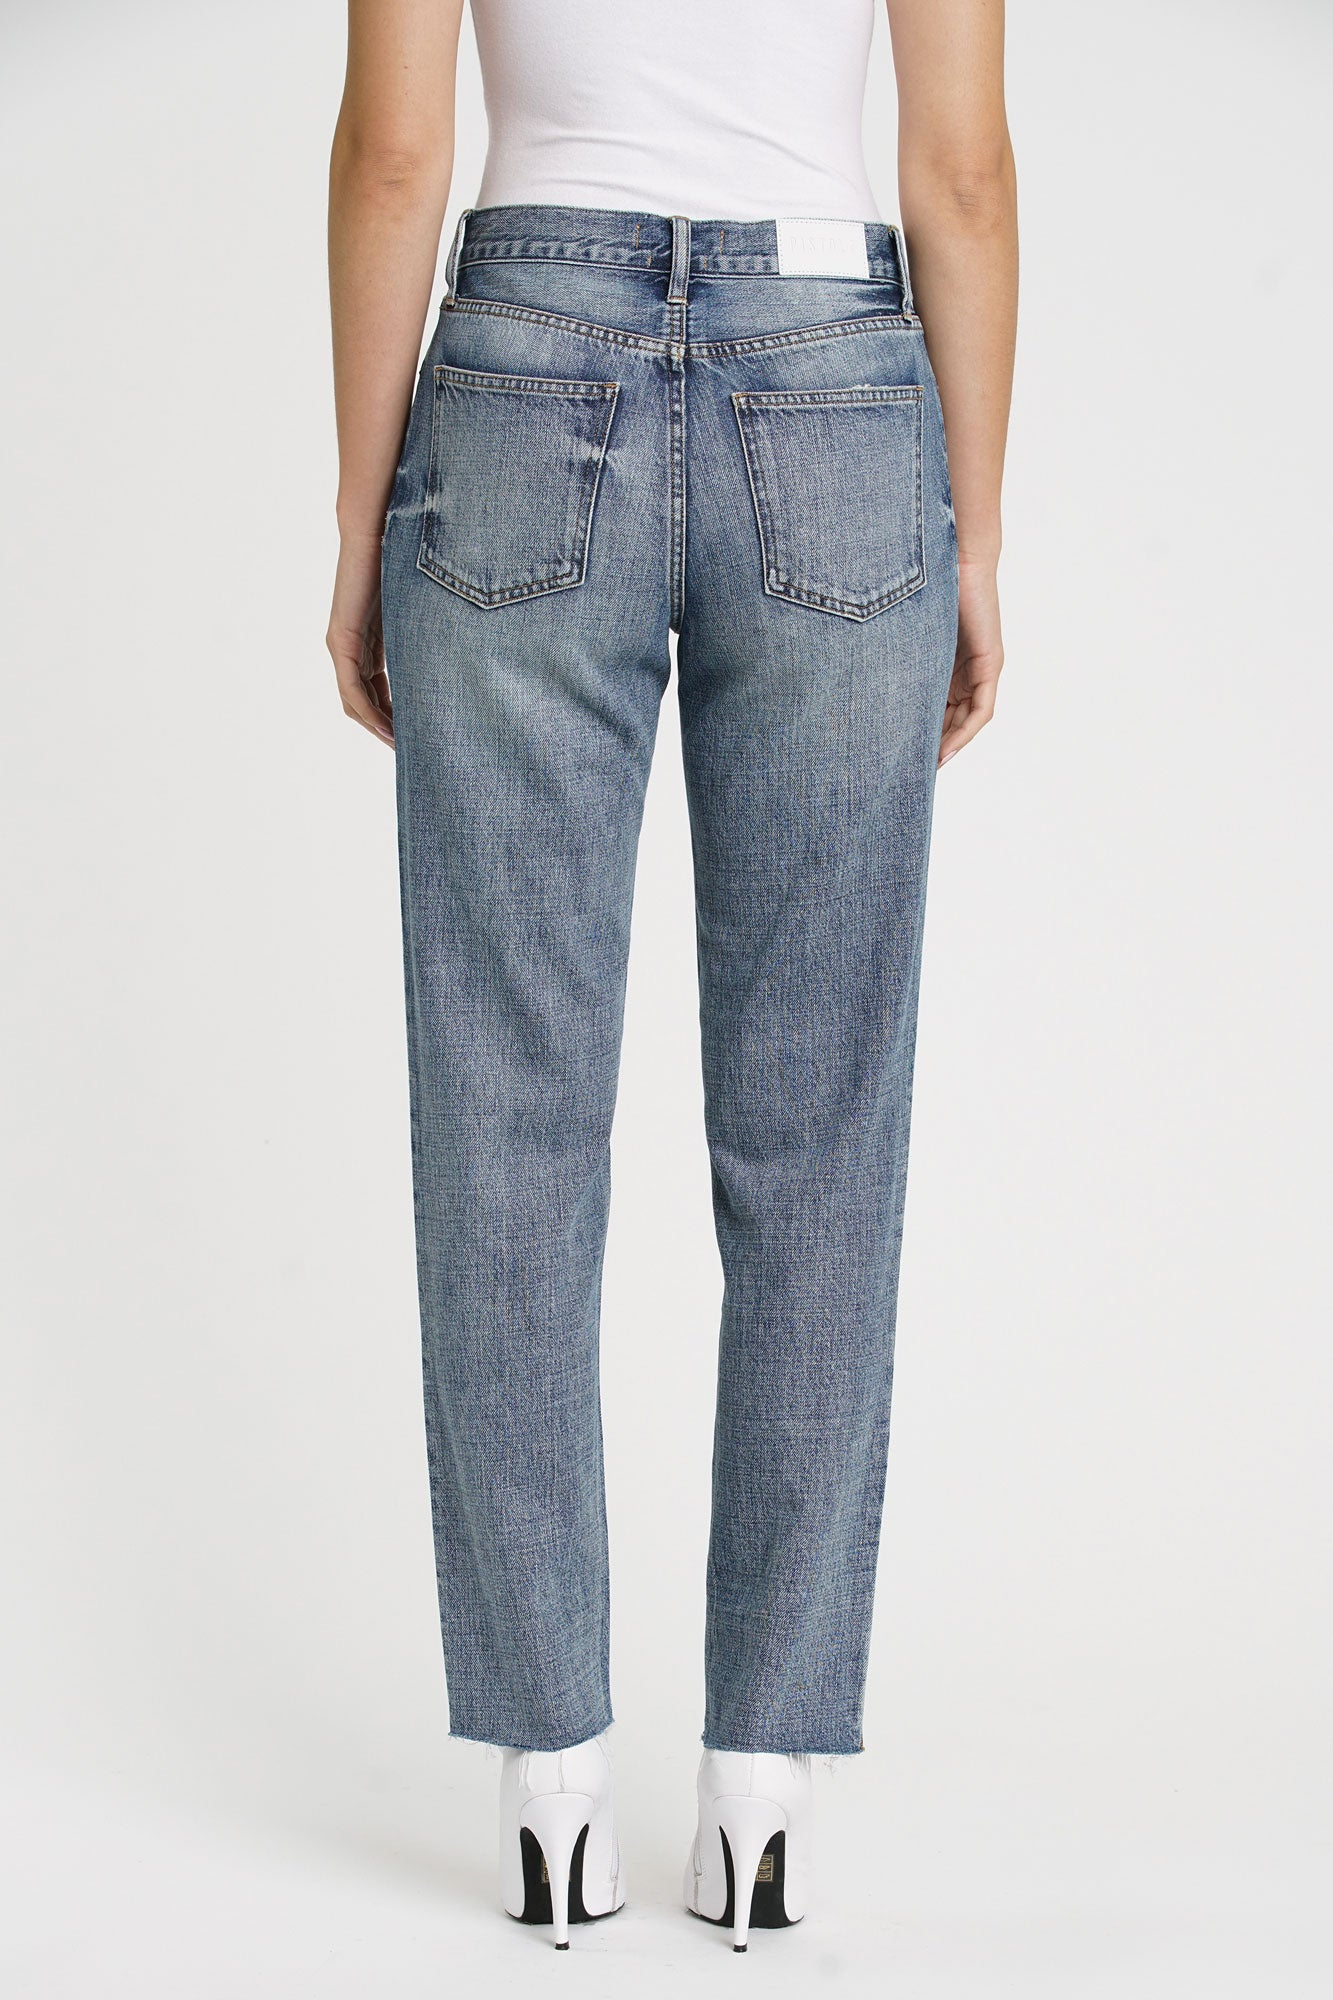 Presley Studded High Rise 90s Jean - Rocksteady